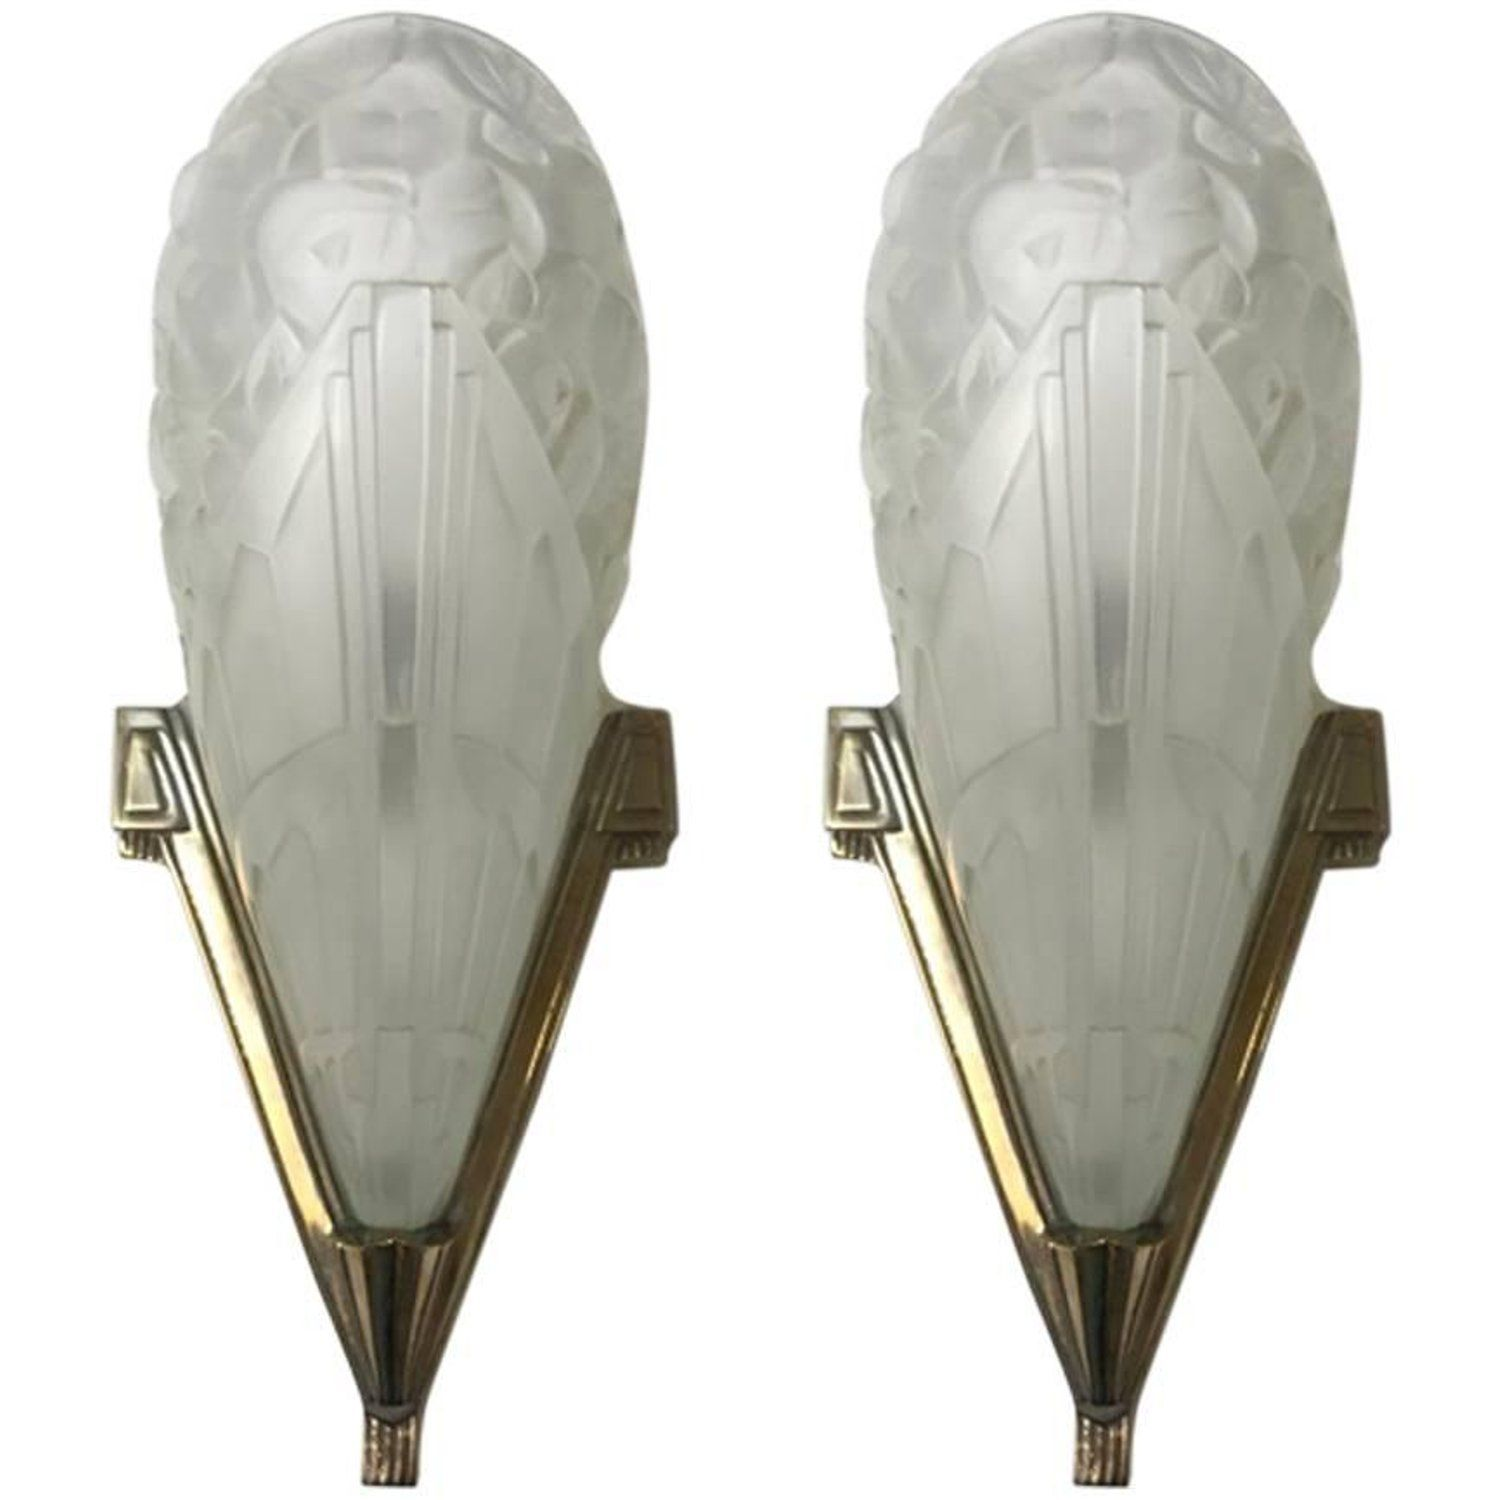 Pair of French Art Deco Wall Sconces by J Robert | Deco wall, French ...